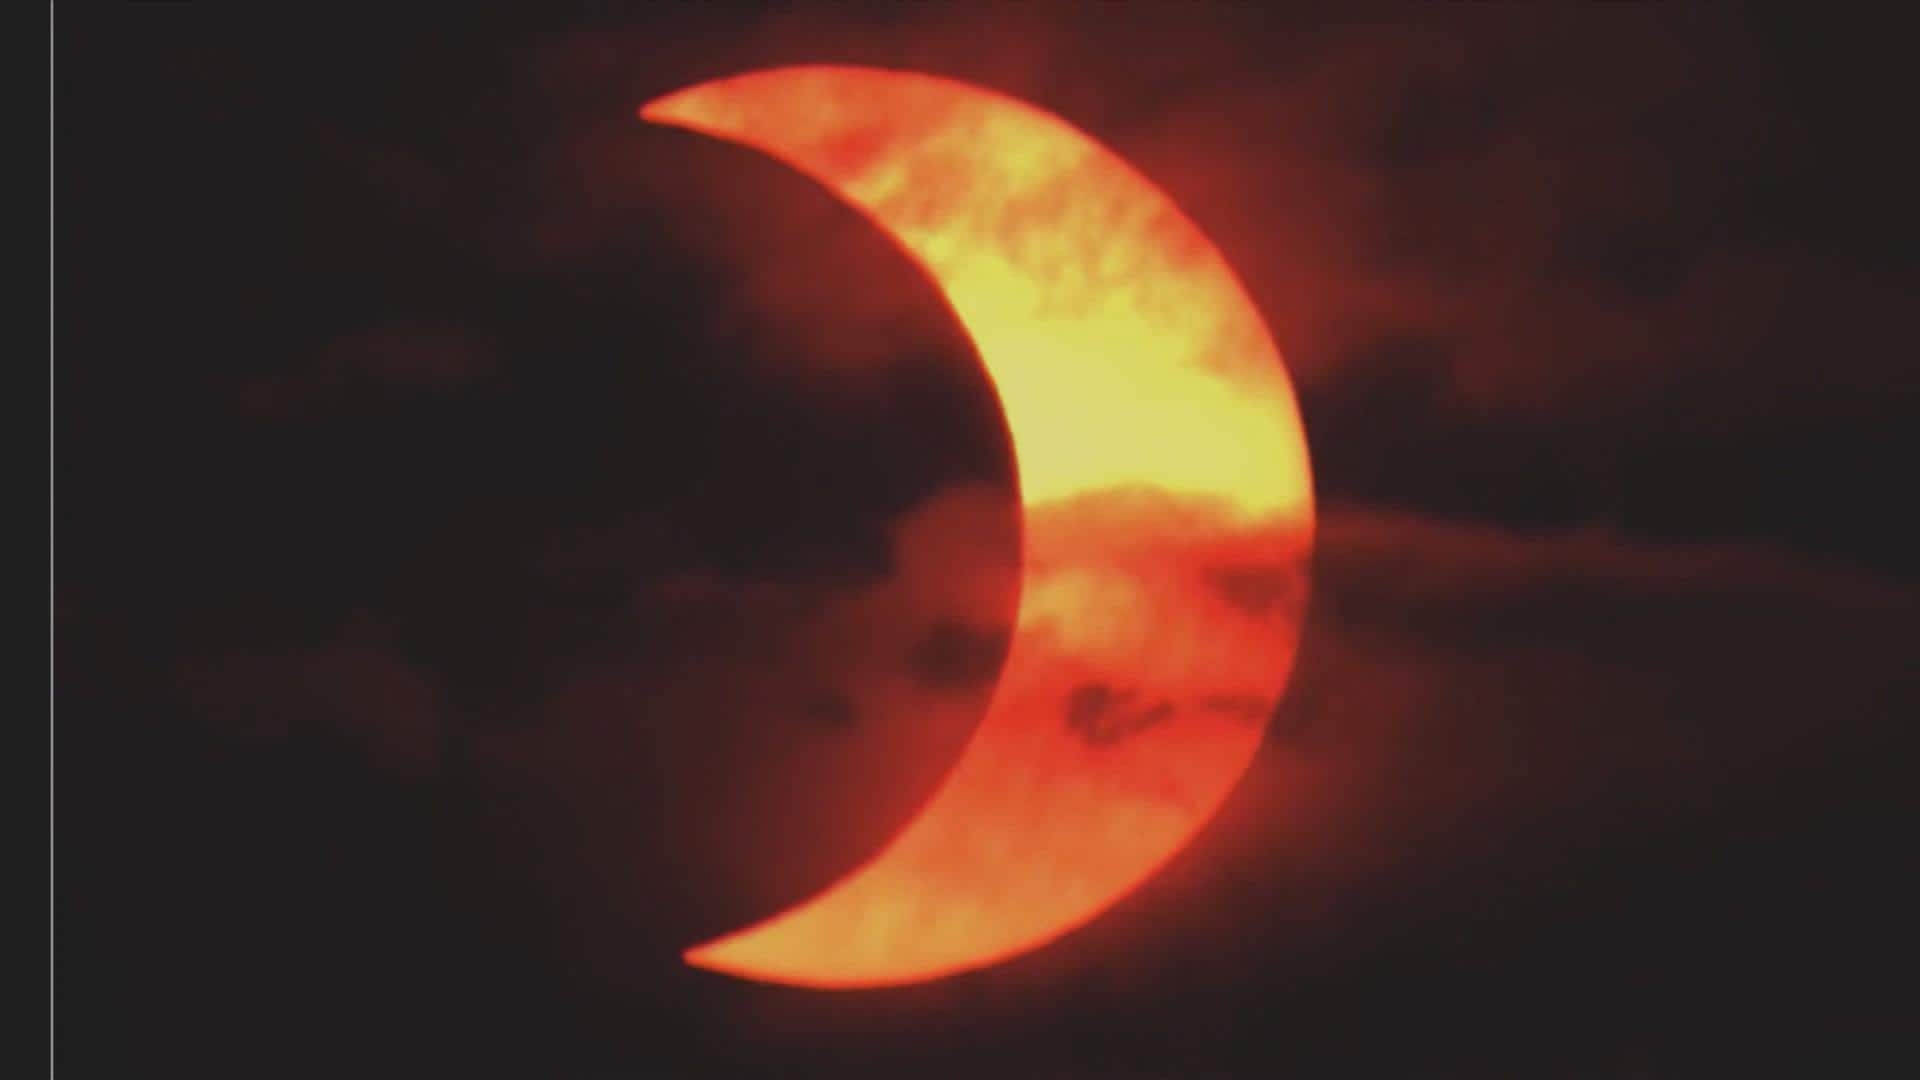 Solar eclipse steals the early morning spotlight